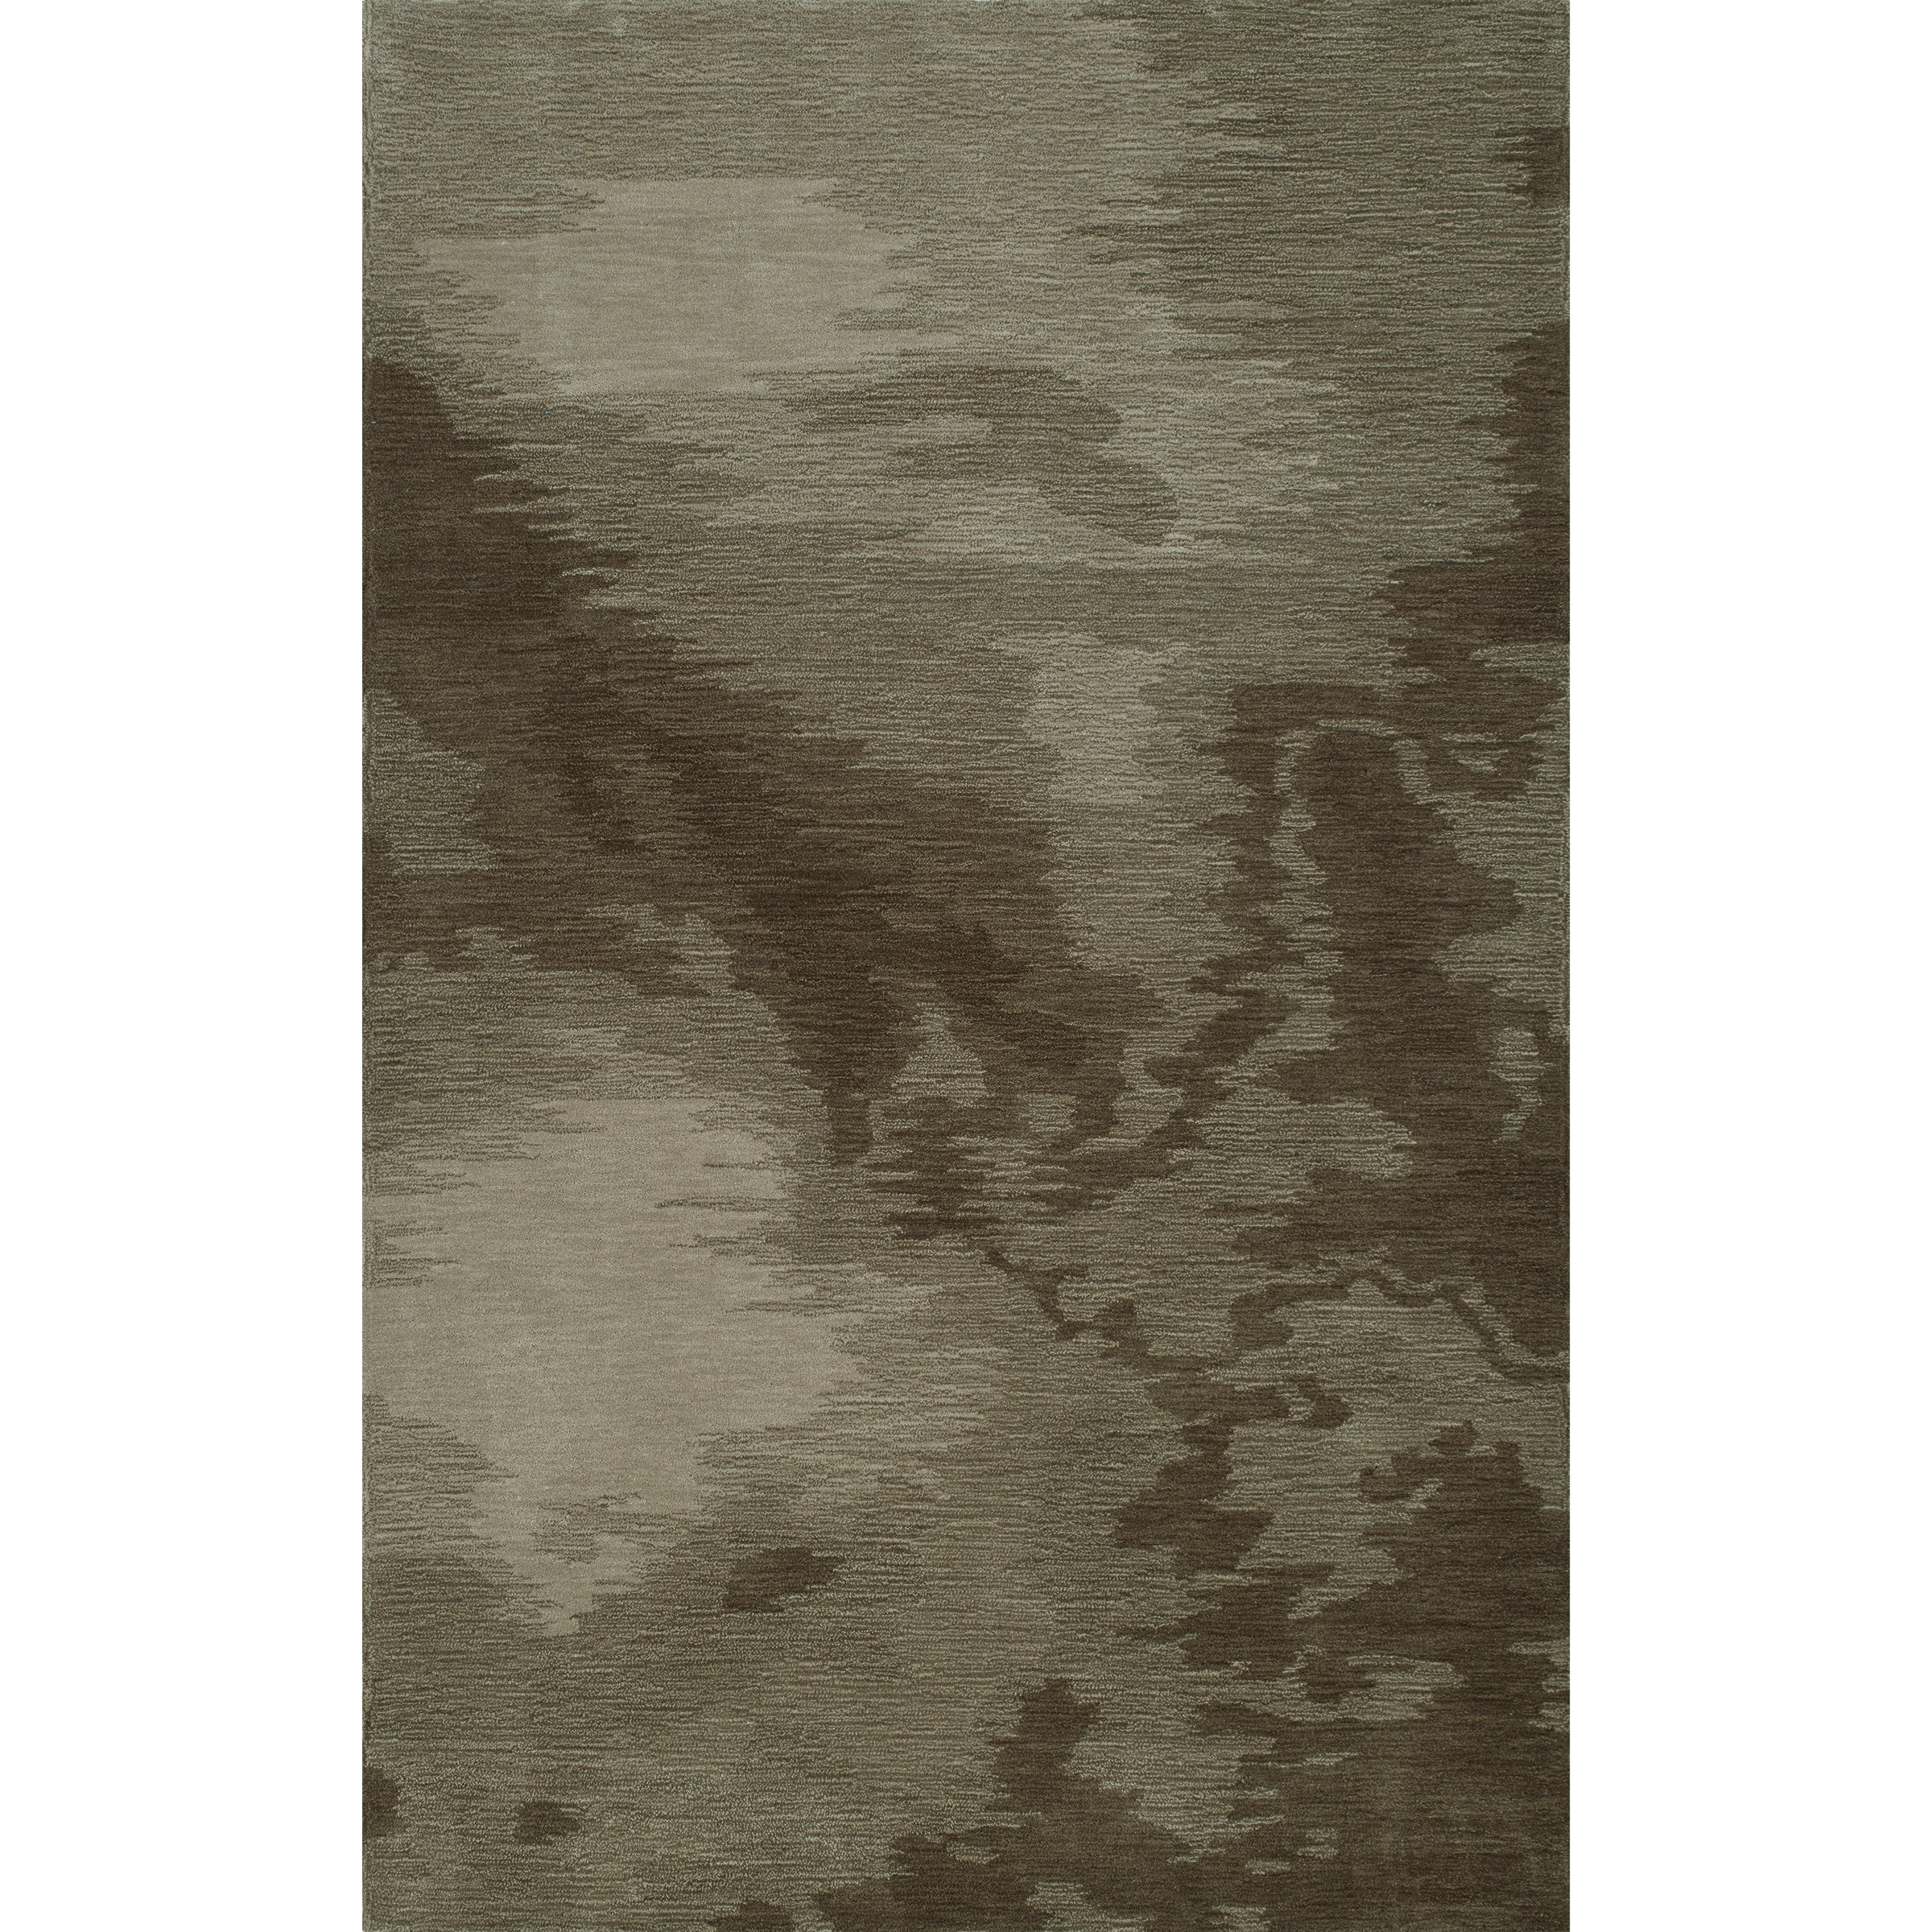 DelMar Taupe 8'X10' Rug by Dalyn at Sadler's Home Furnishings